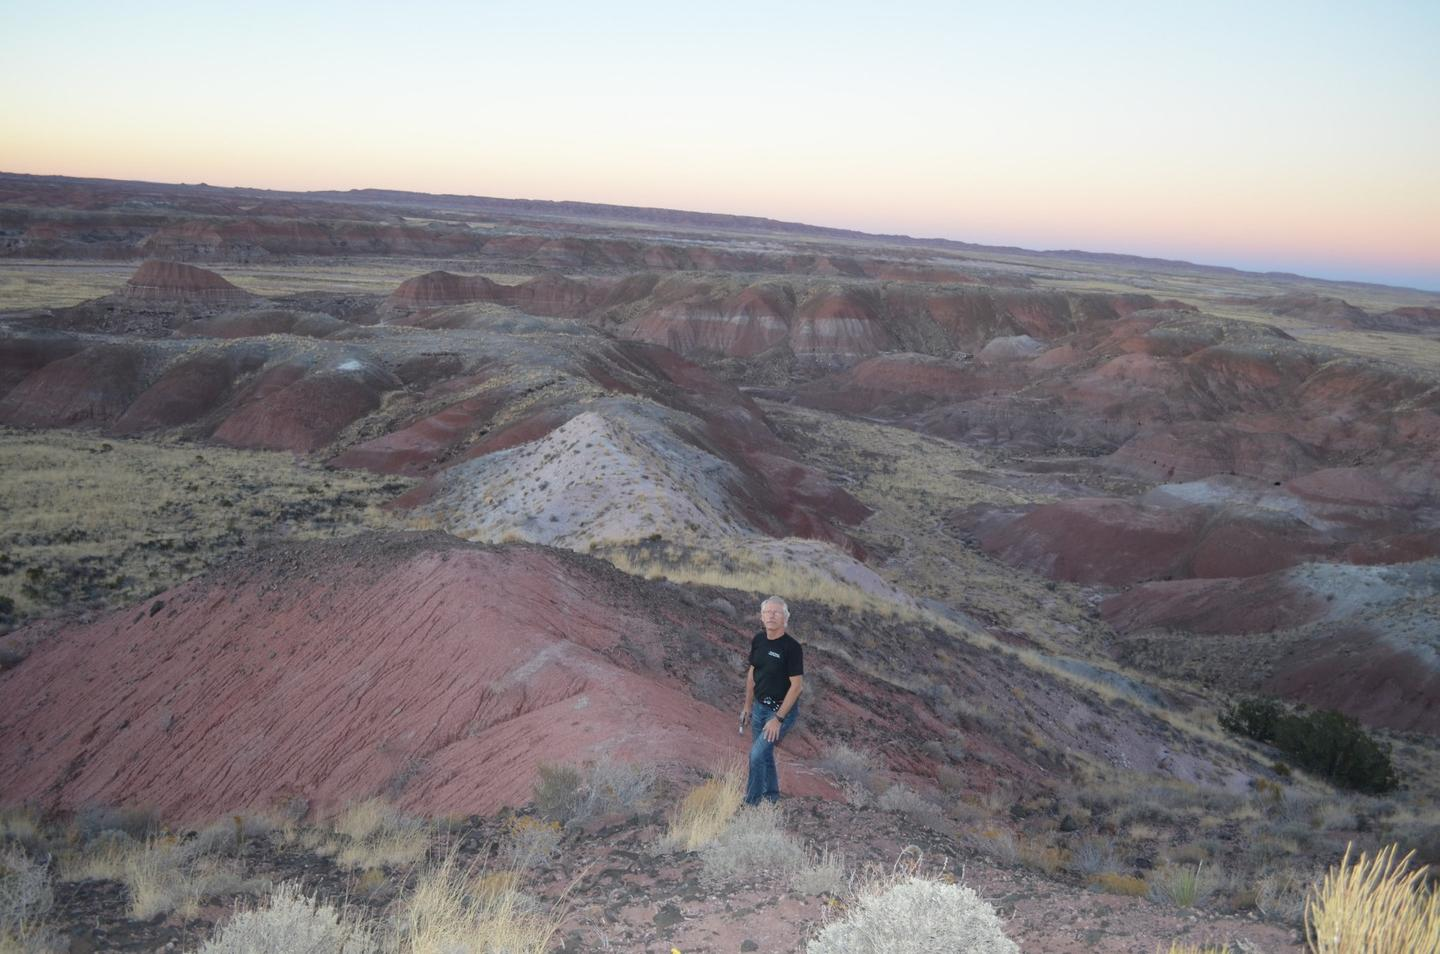 The researchers drilled rock cores from the Petrified Forest National Park in Arizona